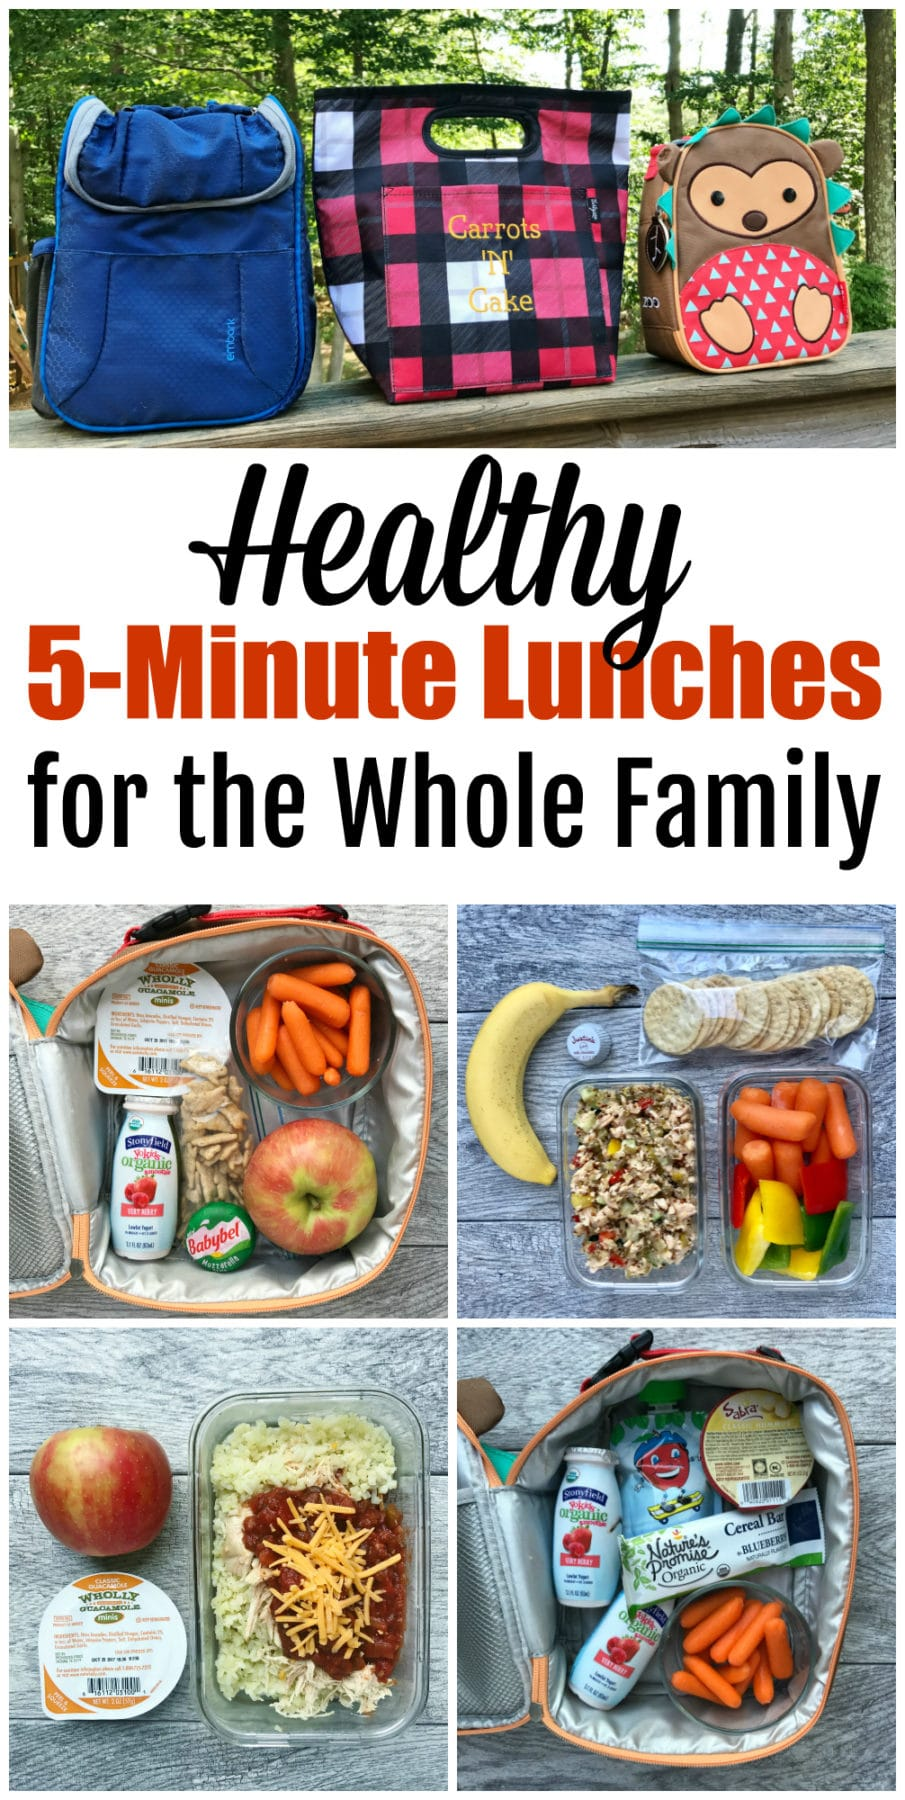 Healthy 5 Minute Lunches For The Whole Family Carrots N Cake Babybelle Box Bayi Type Vienna All Of Foods And Products Featured Are From Stop Shop In Norwell On Washington Street Which Has An Incredible Selection Variety